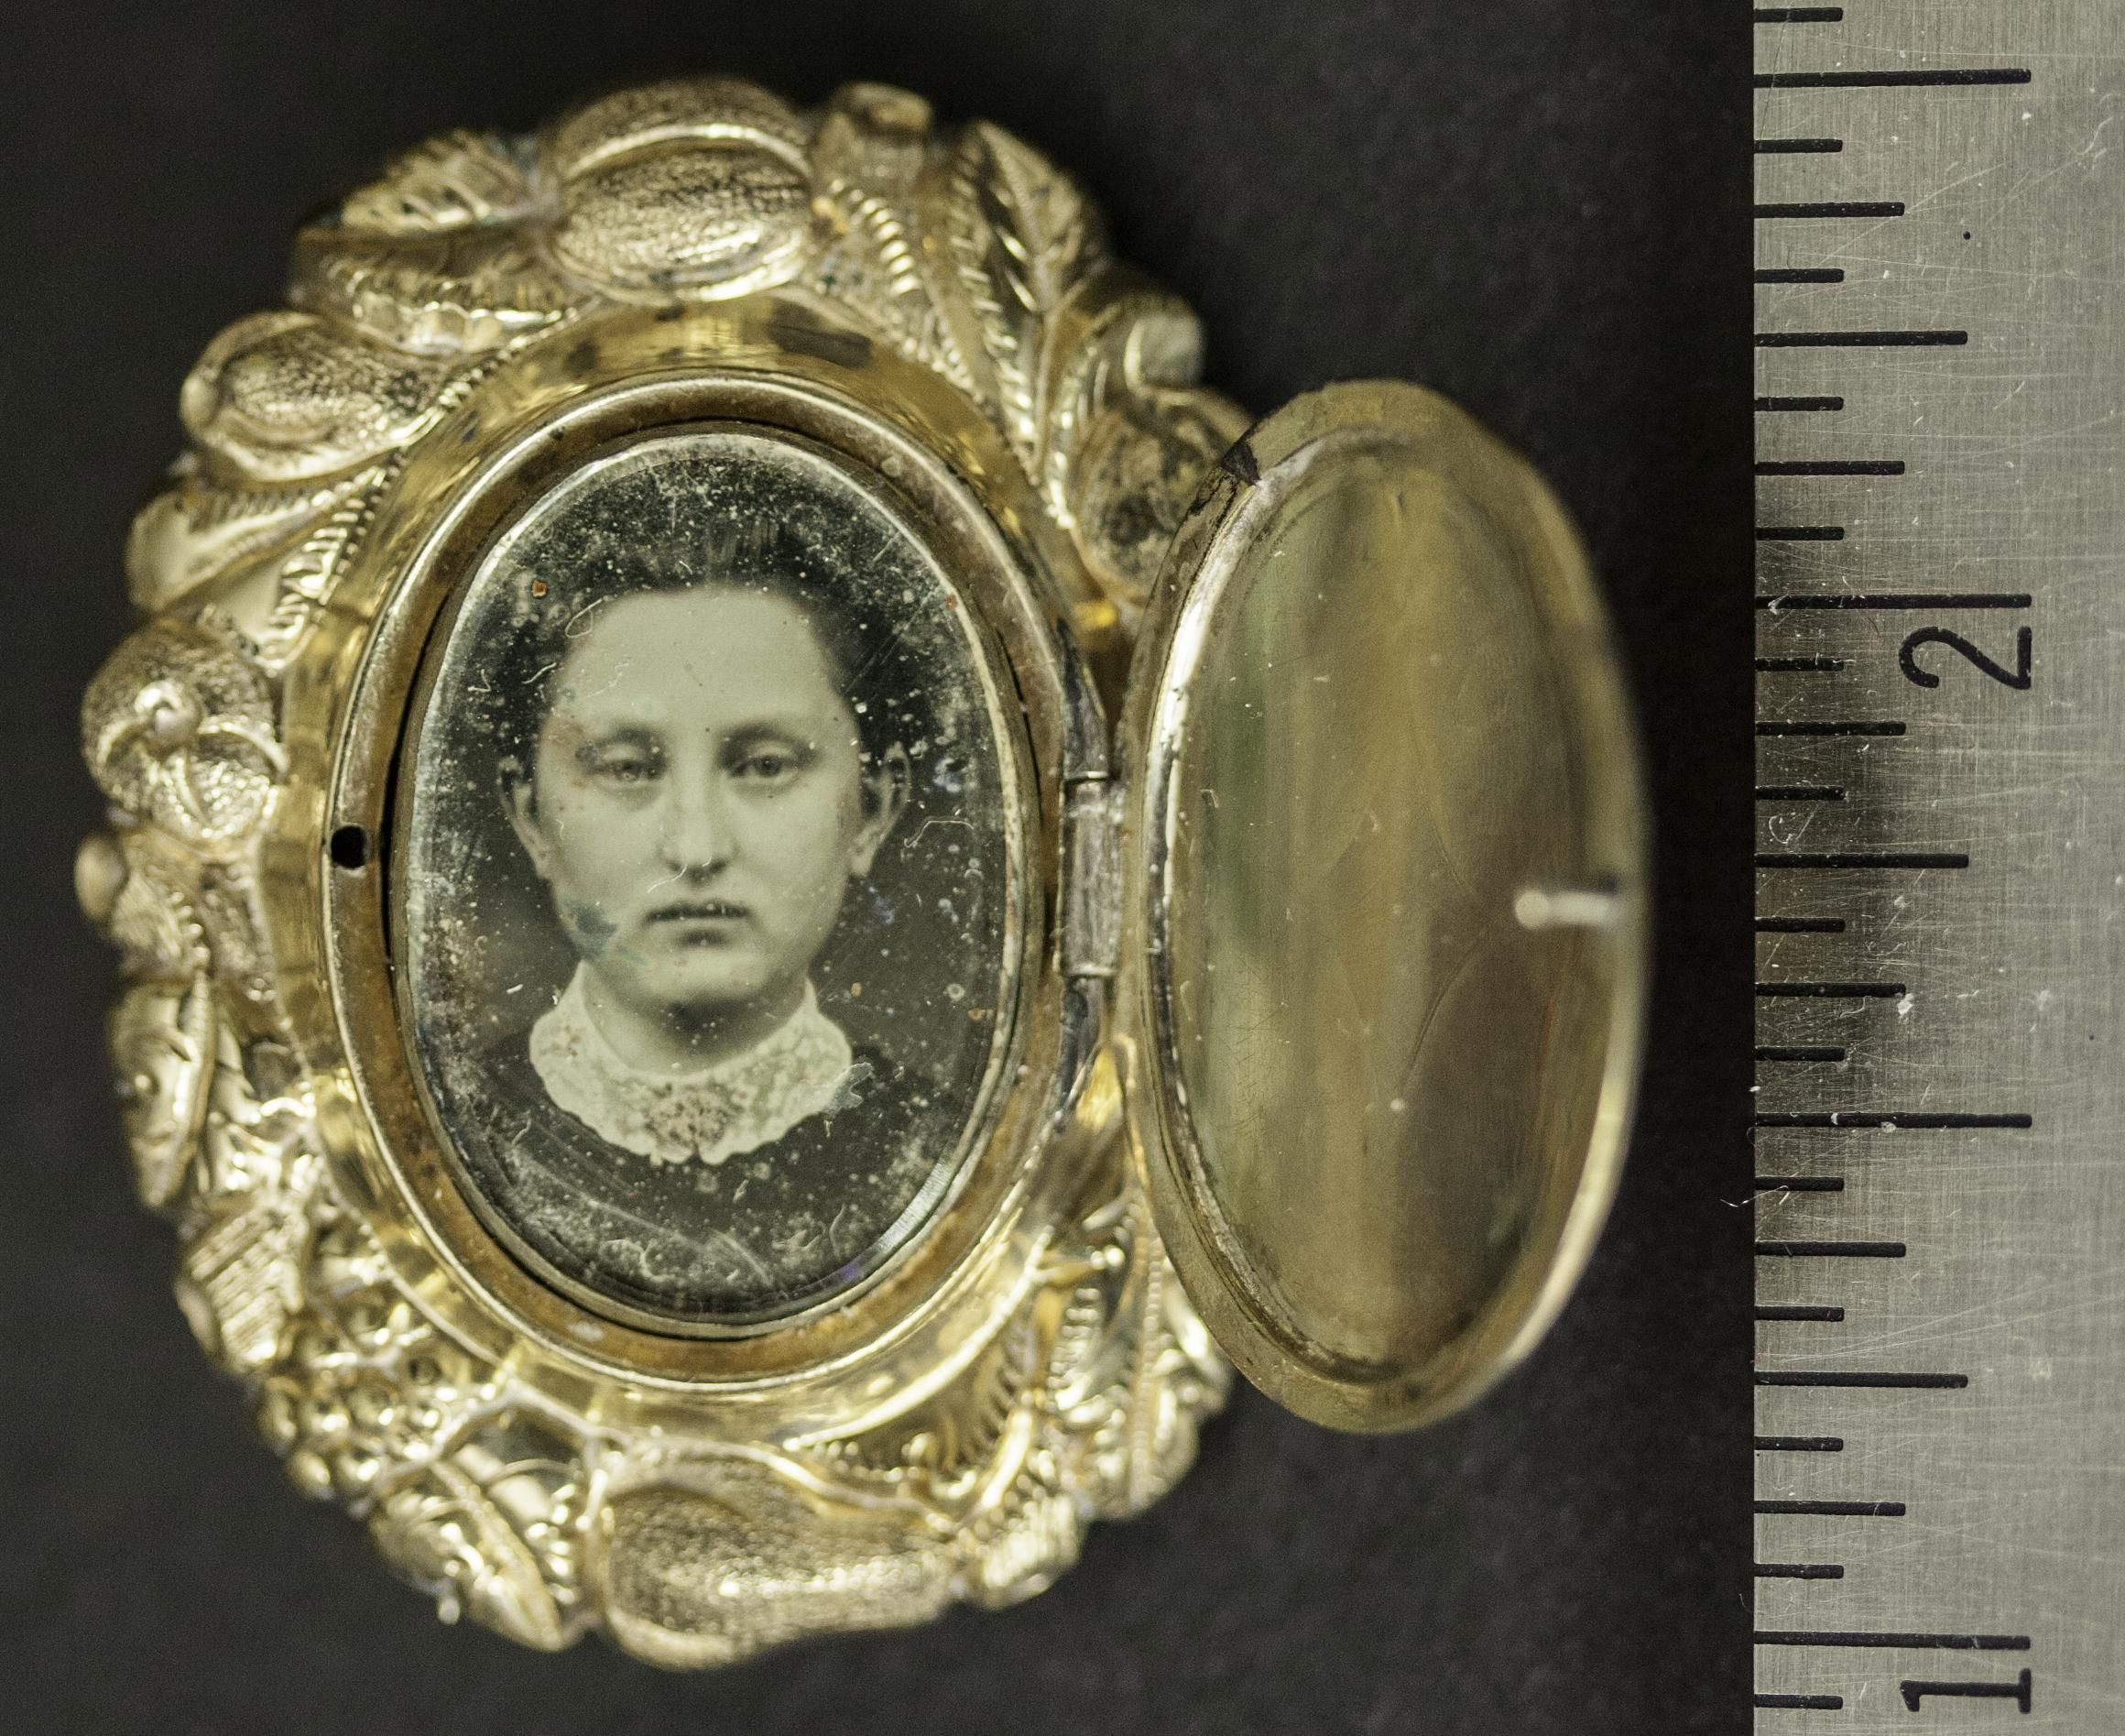 All sizes | Daguerreotype Jewelry 1850s | Flickr - Photo Sharing!